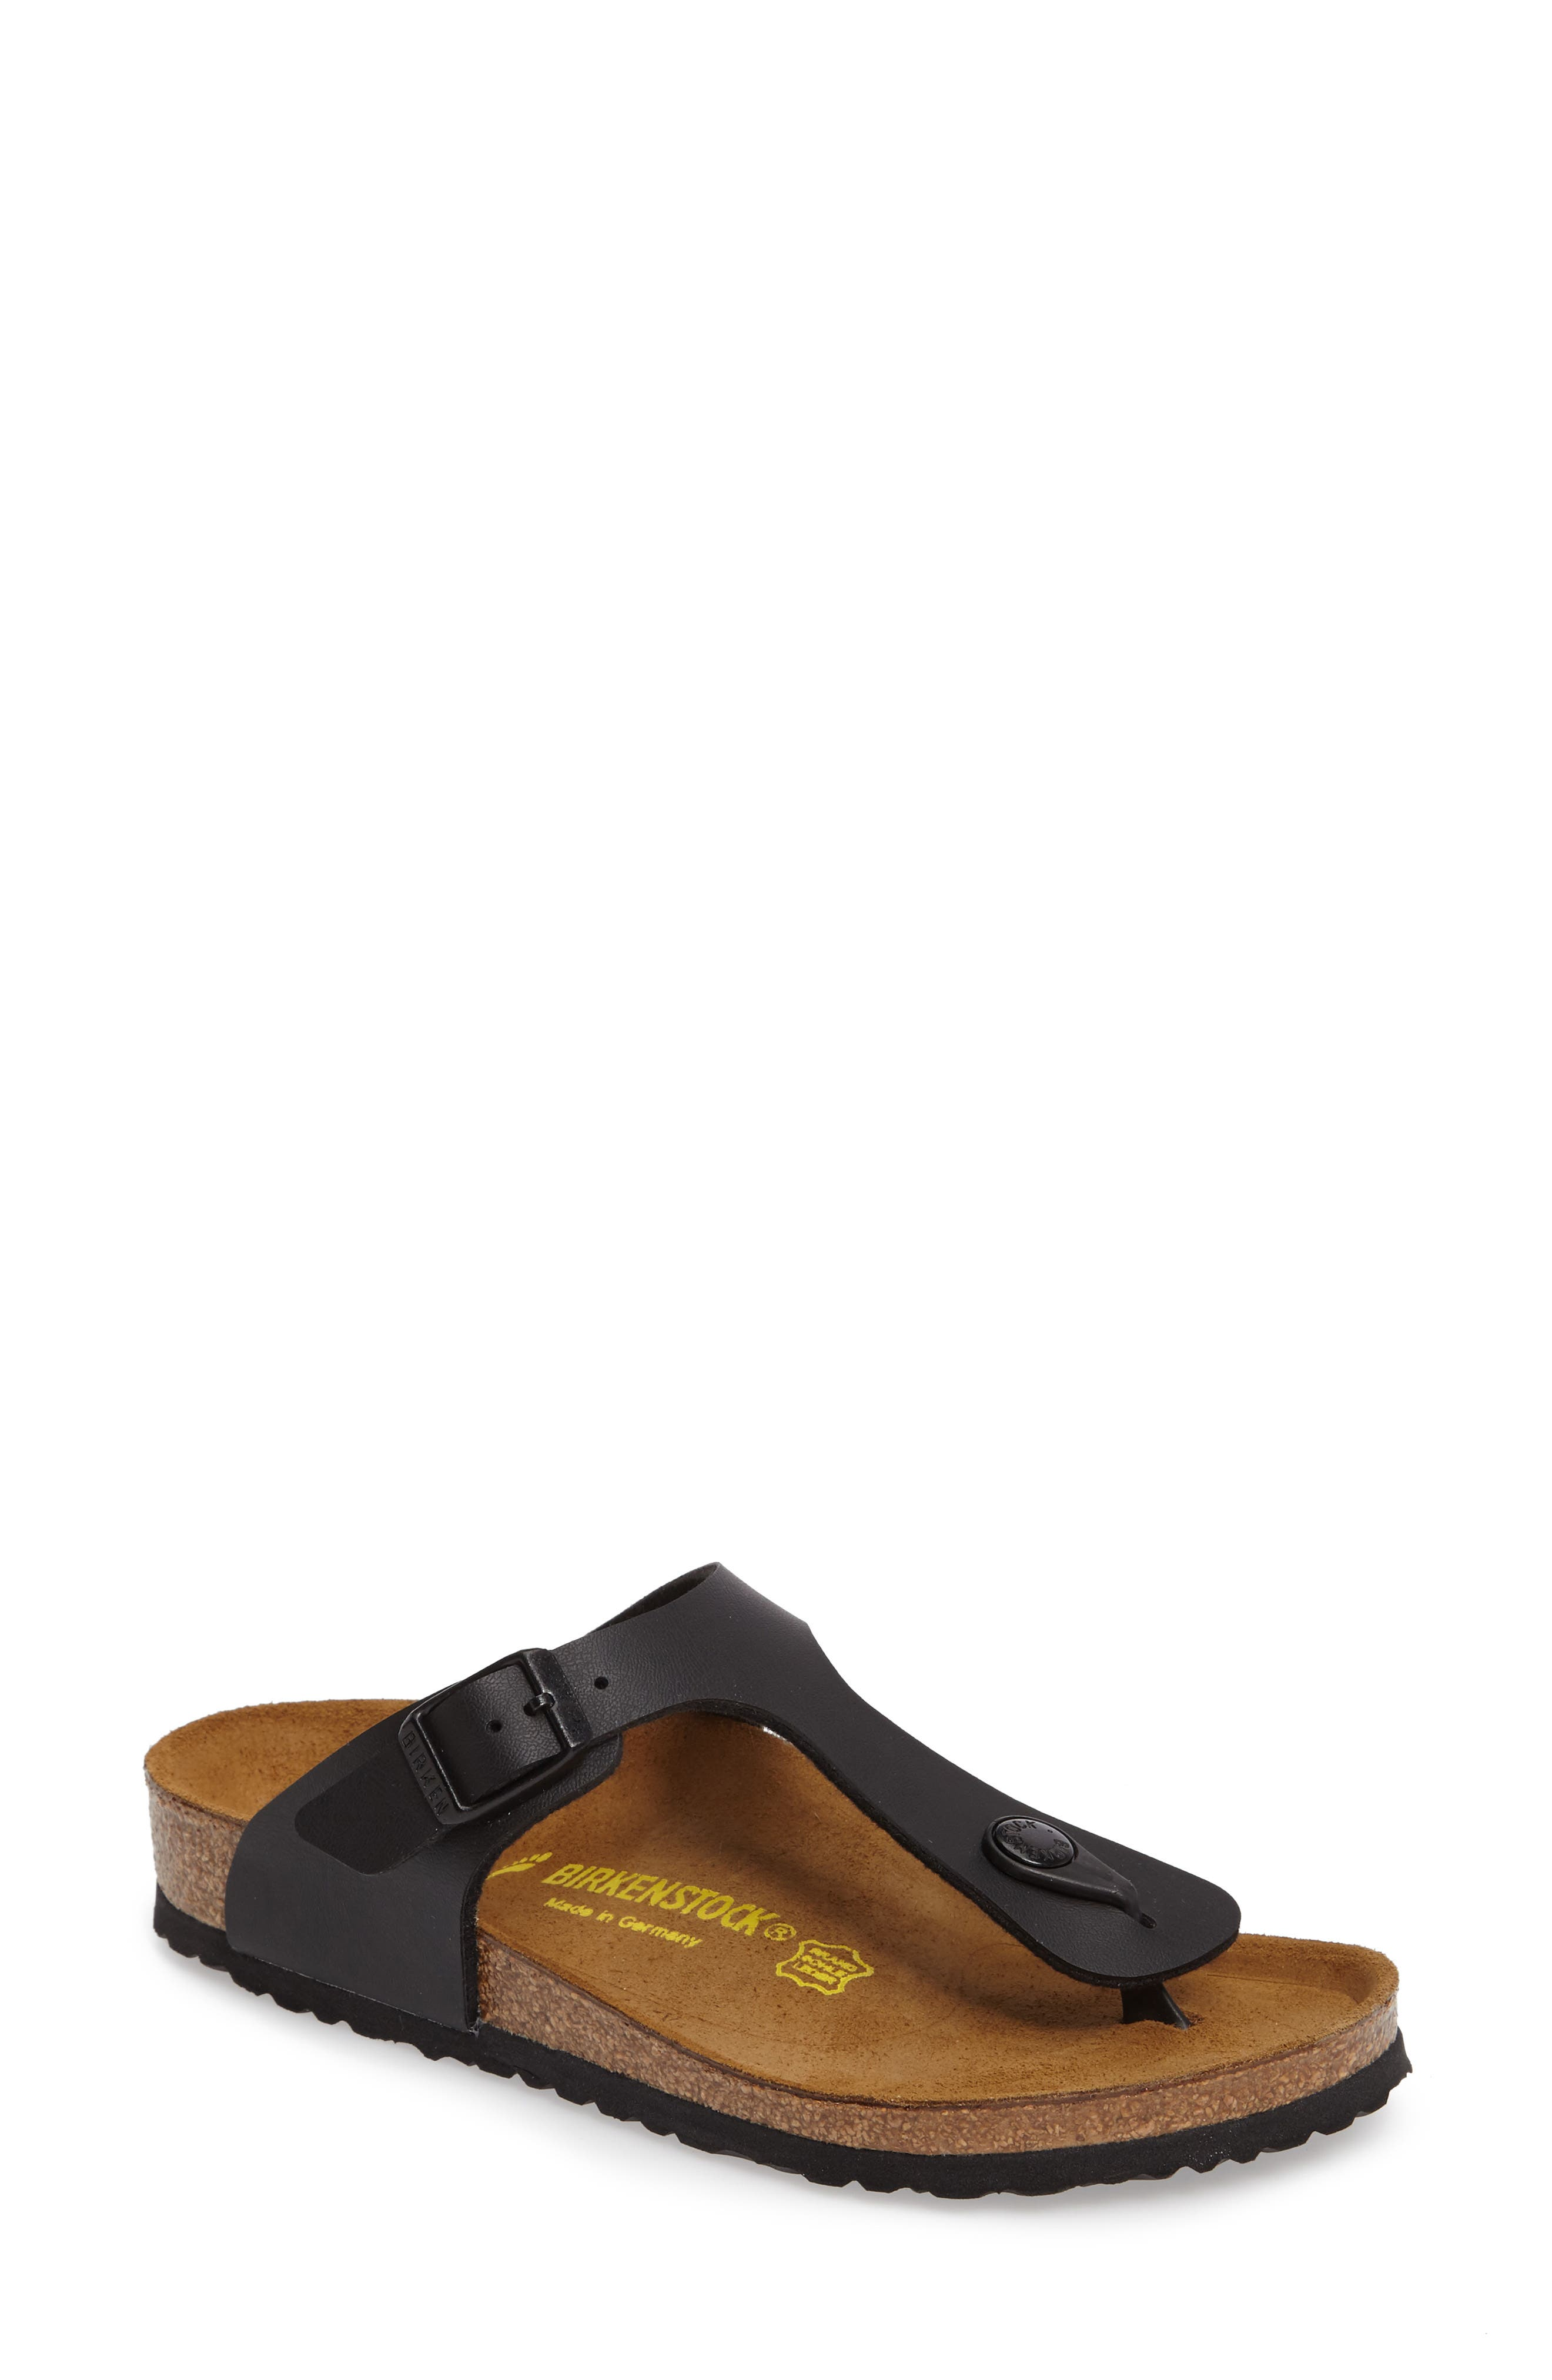 Birkenstock Gizeh Sandal (Toddler & Little Kid)